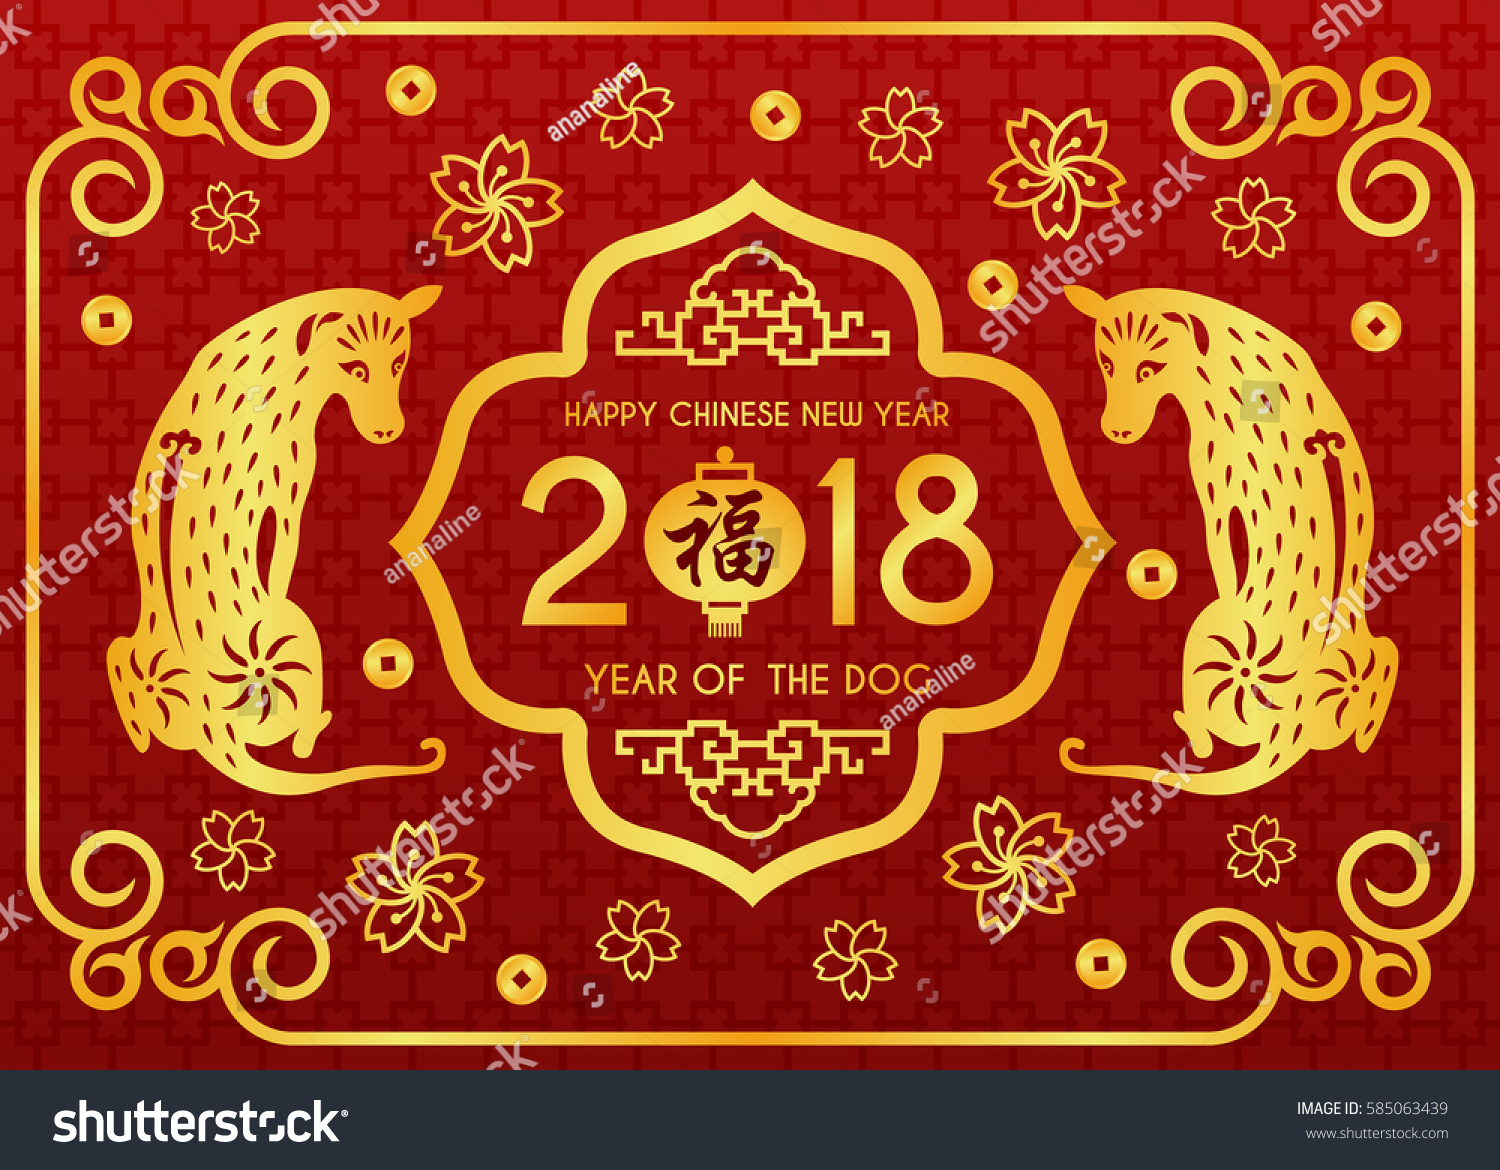 happy chinese new year 2018 card with chinese word mean blessing in lanterns and twin gold